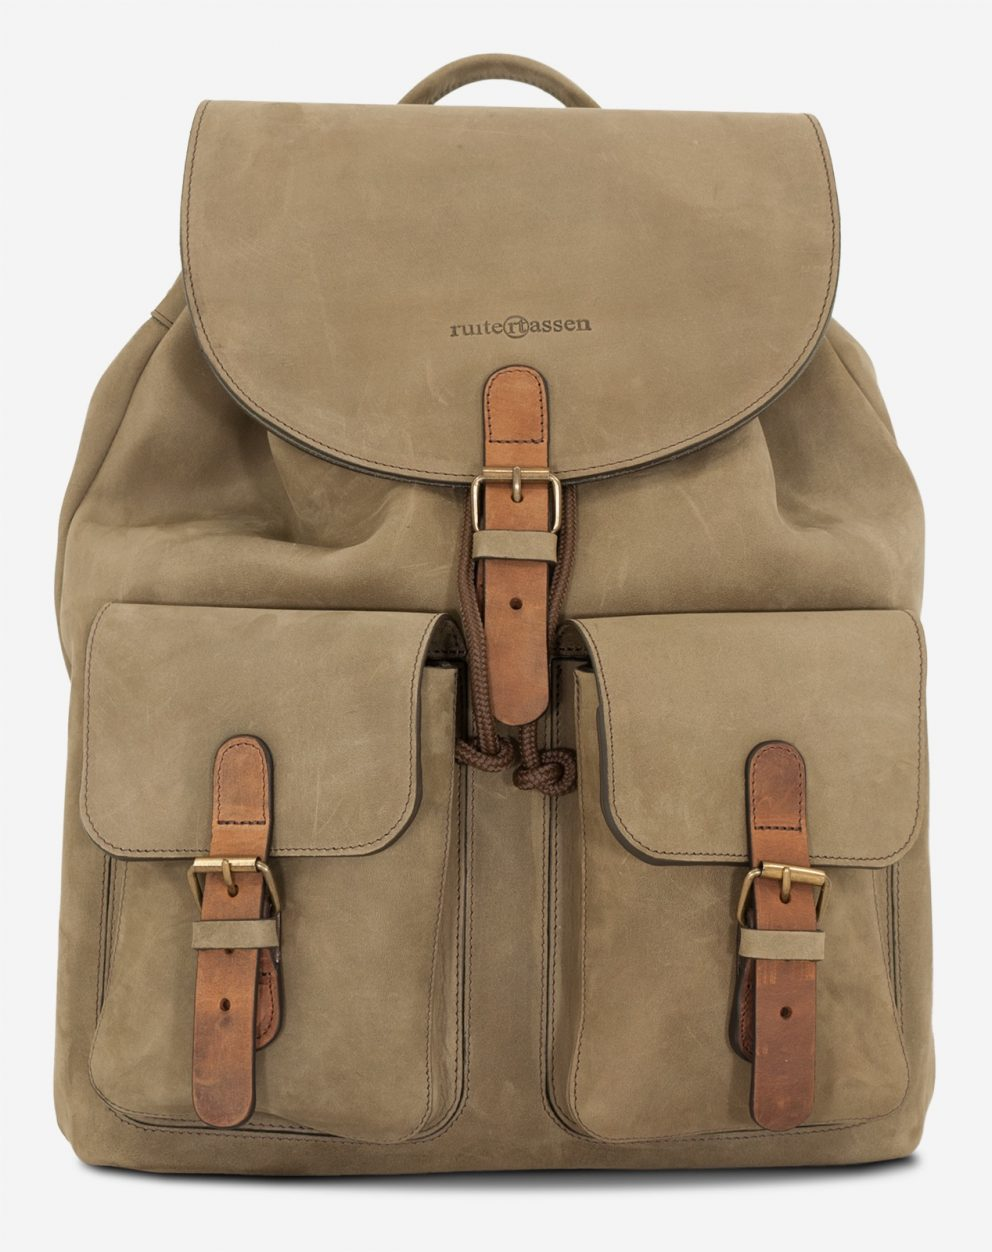 Front view of the handmade soft leather backpack.